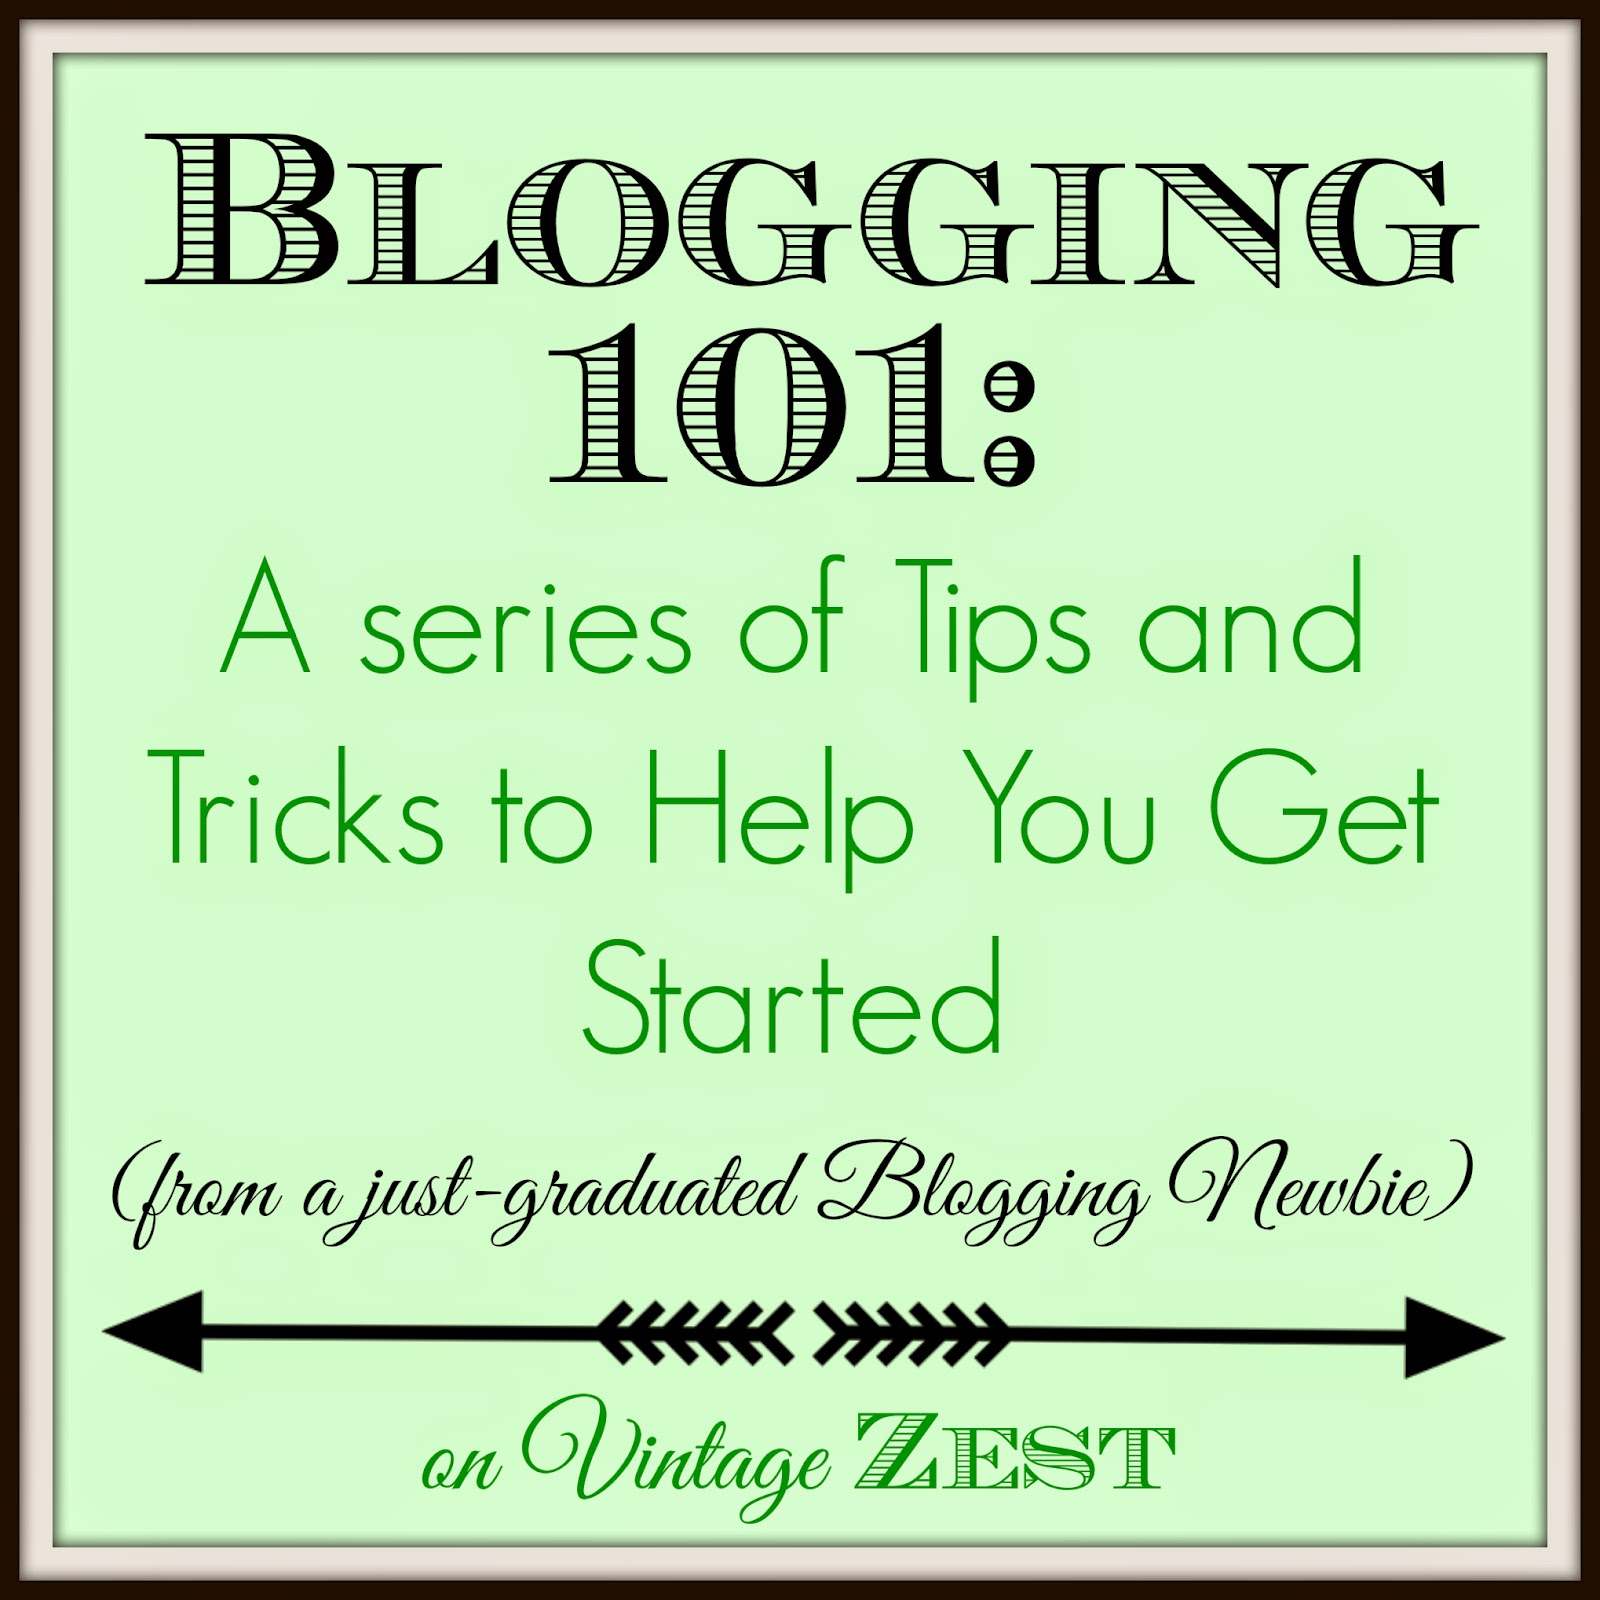 Blogging 101 on Diane's Vintage Zest!